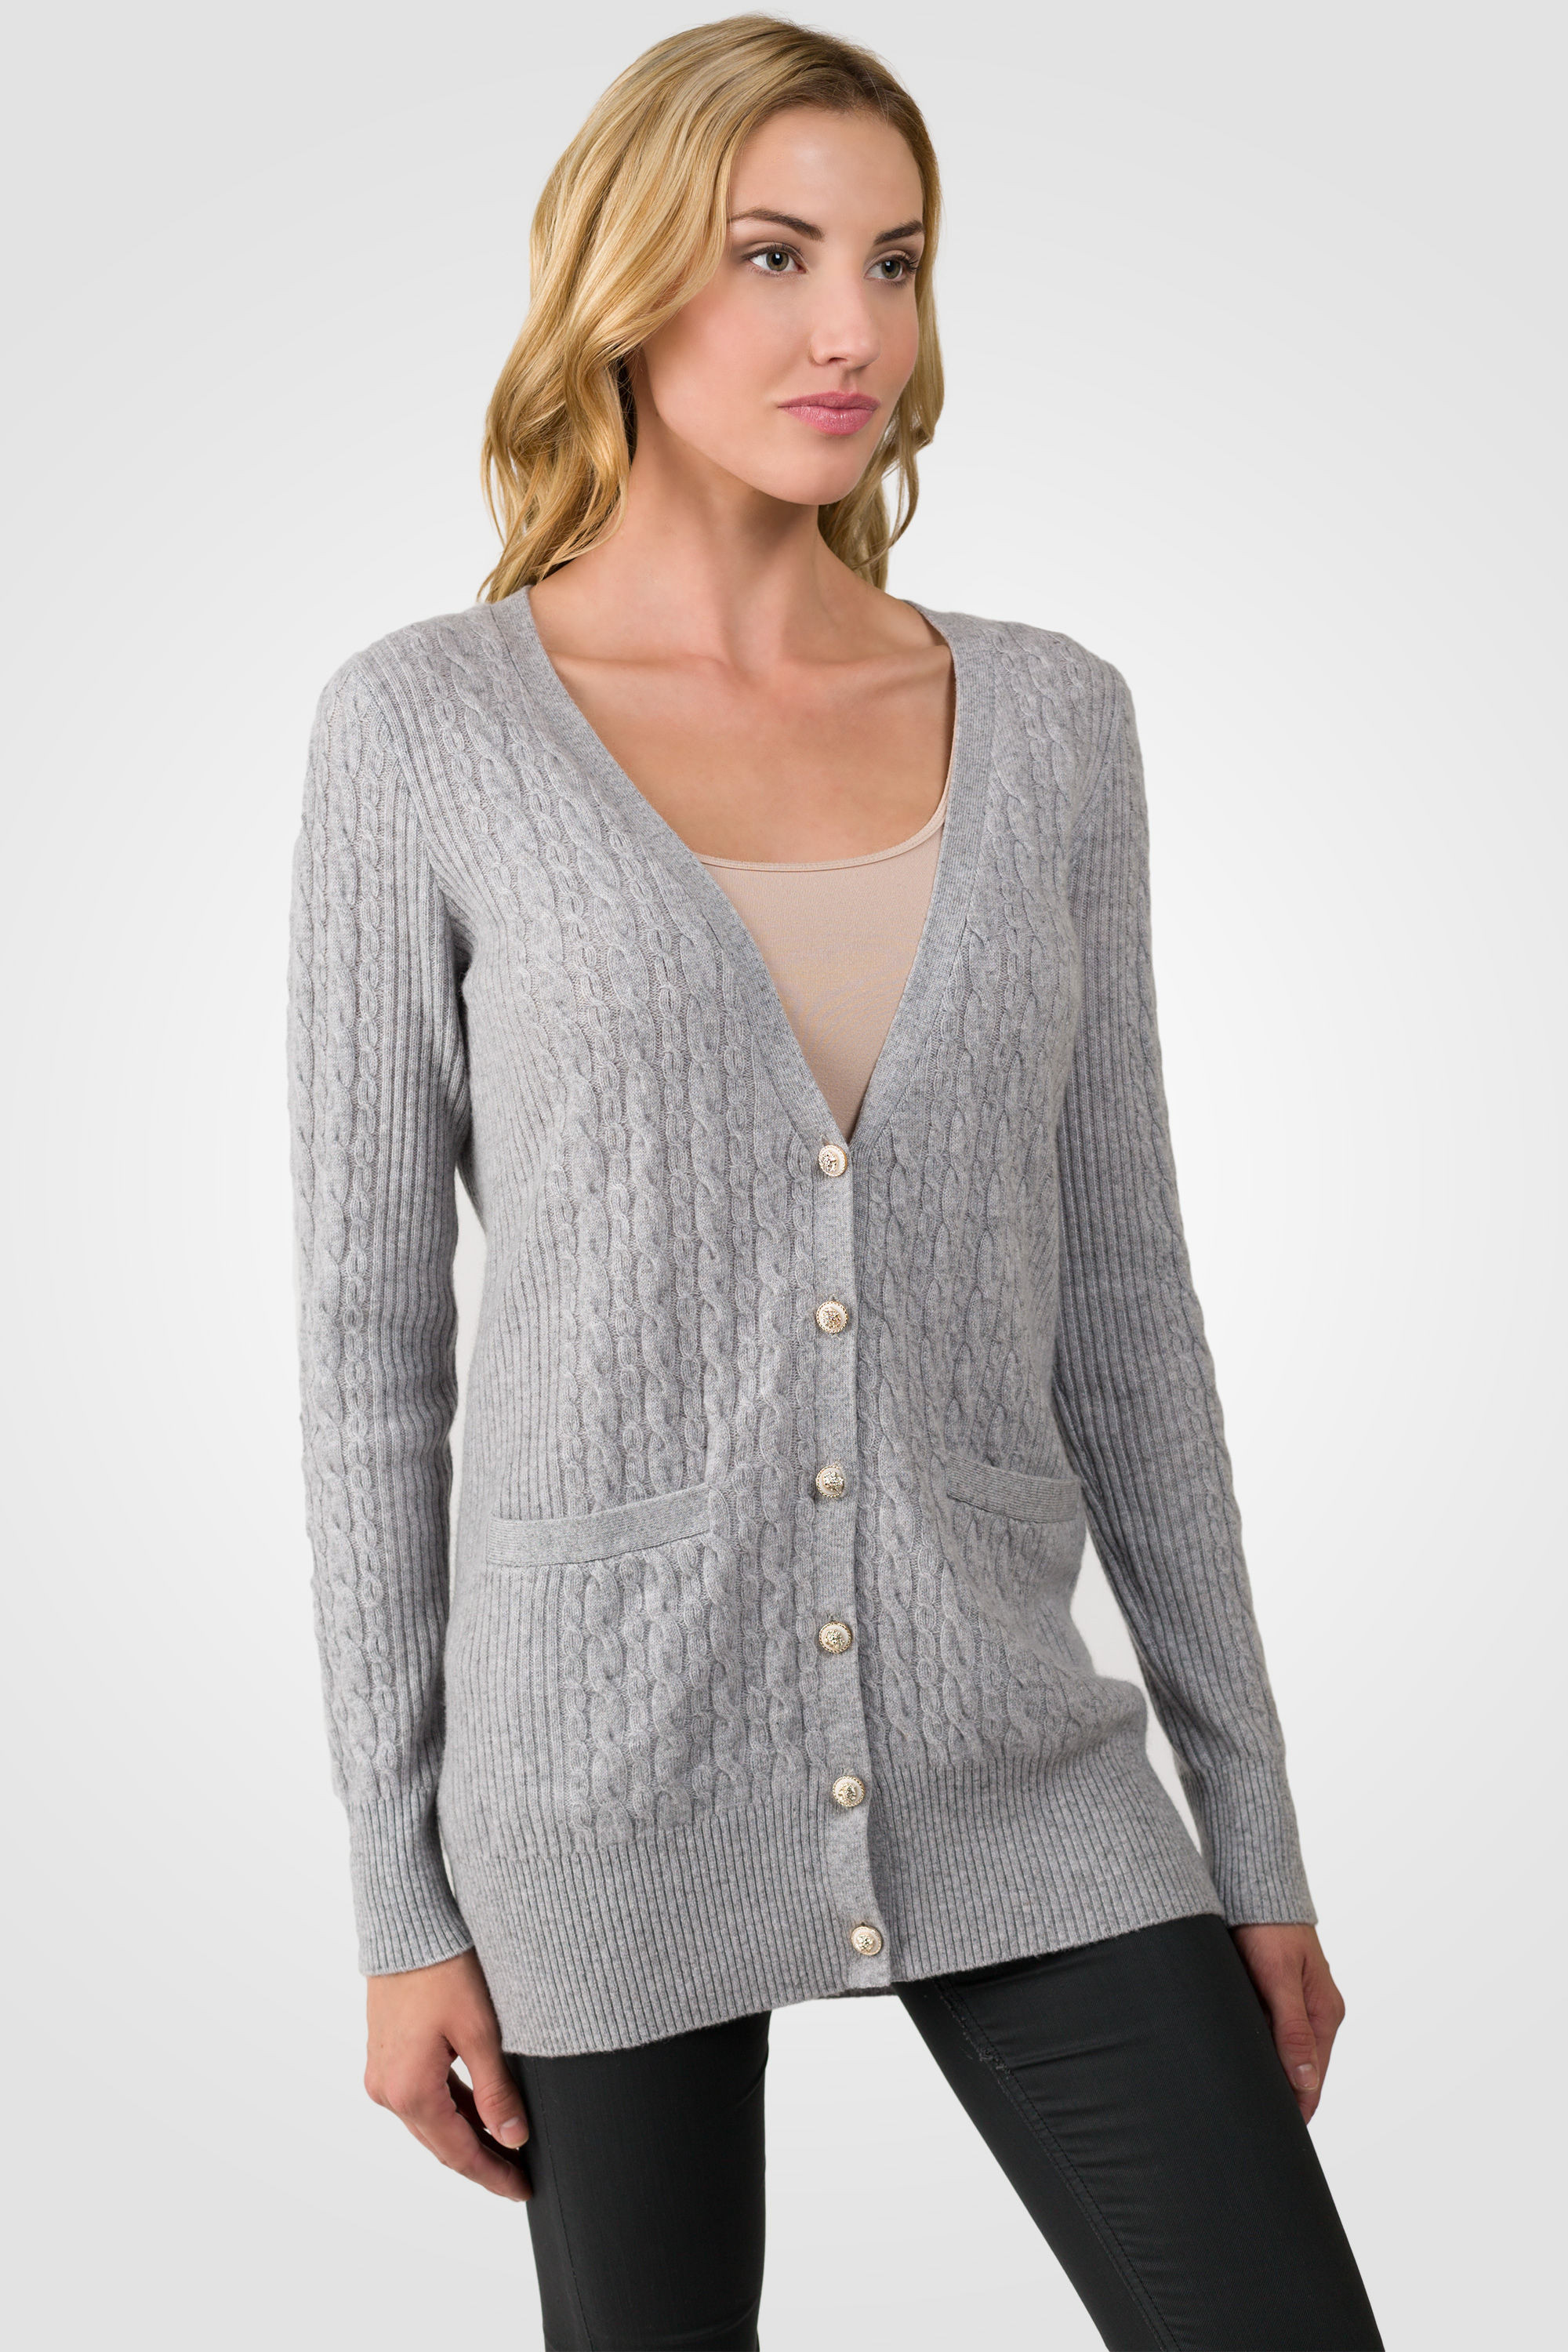 New Grey Cashmere Cable Knit V Neck Long Cardigan Sweater Cable Knit Cardigan Sweater Of Wonderful 46 Models Cable Knit Cardigan Sweater